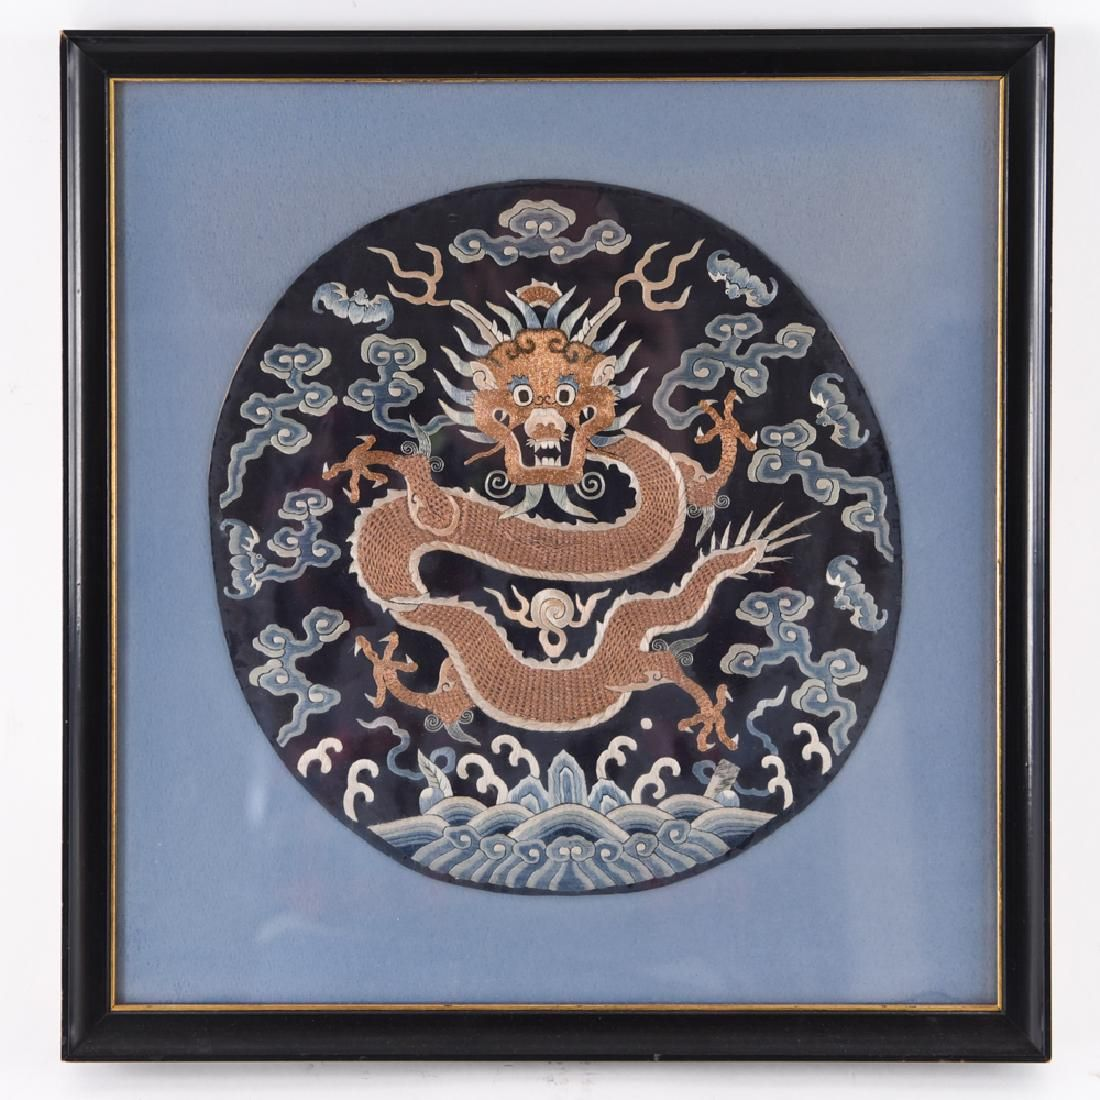 ANTIQUE CHINESE DRAGON BADGE EMBROIDERY